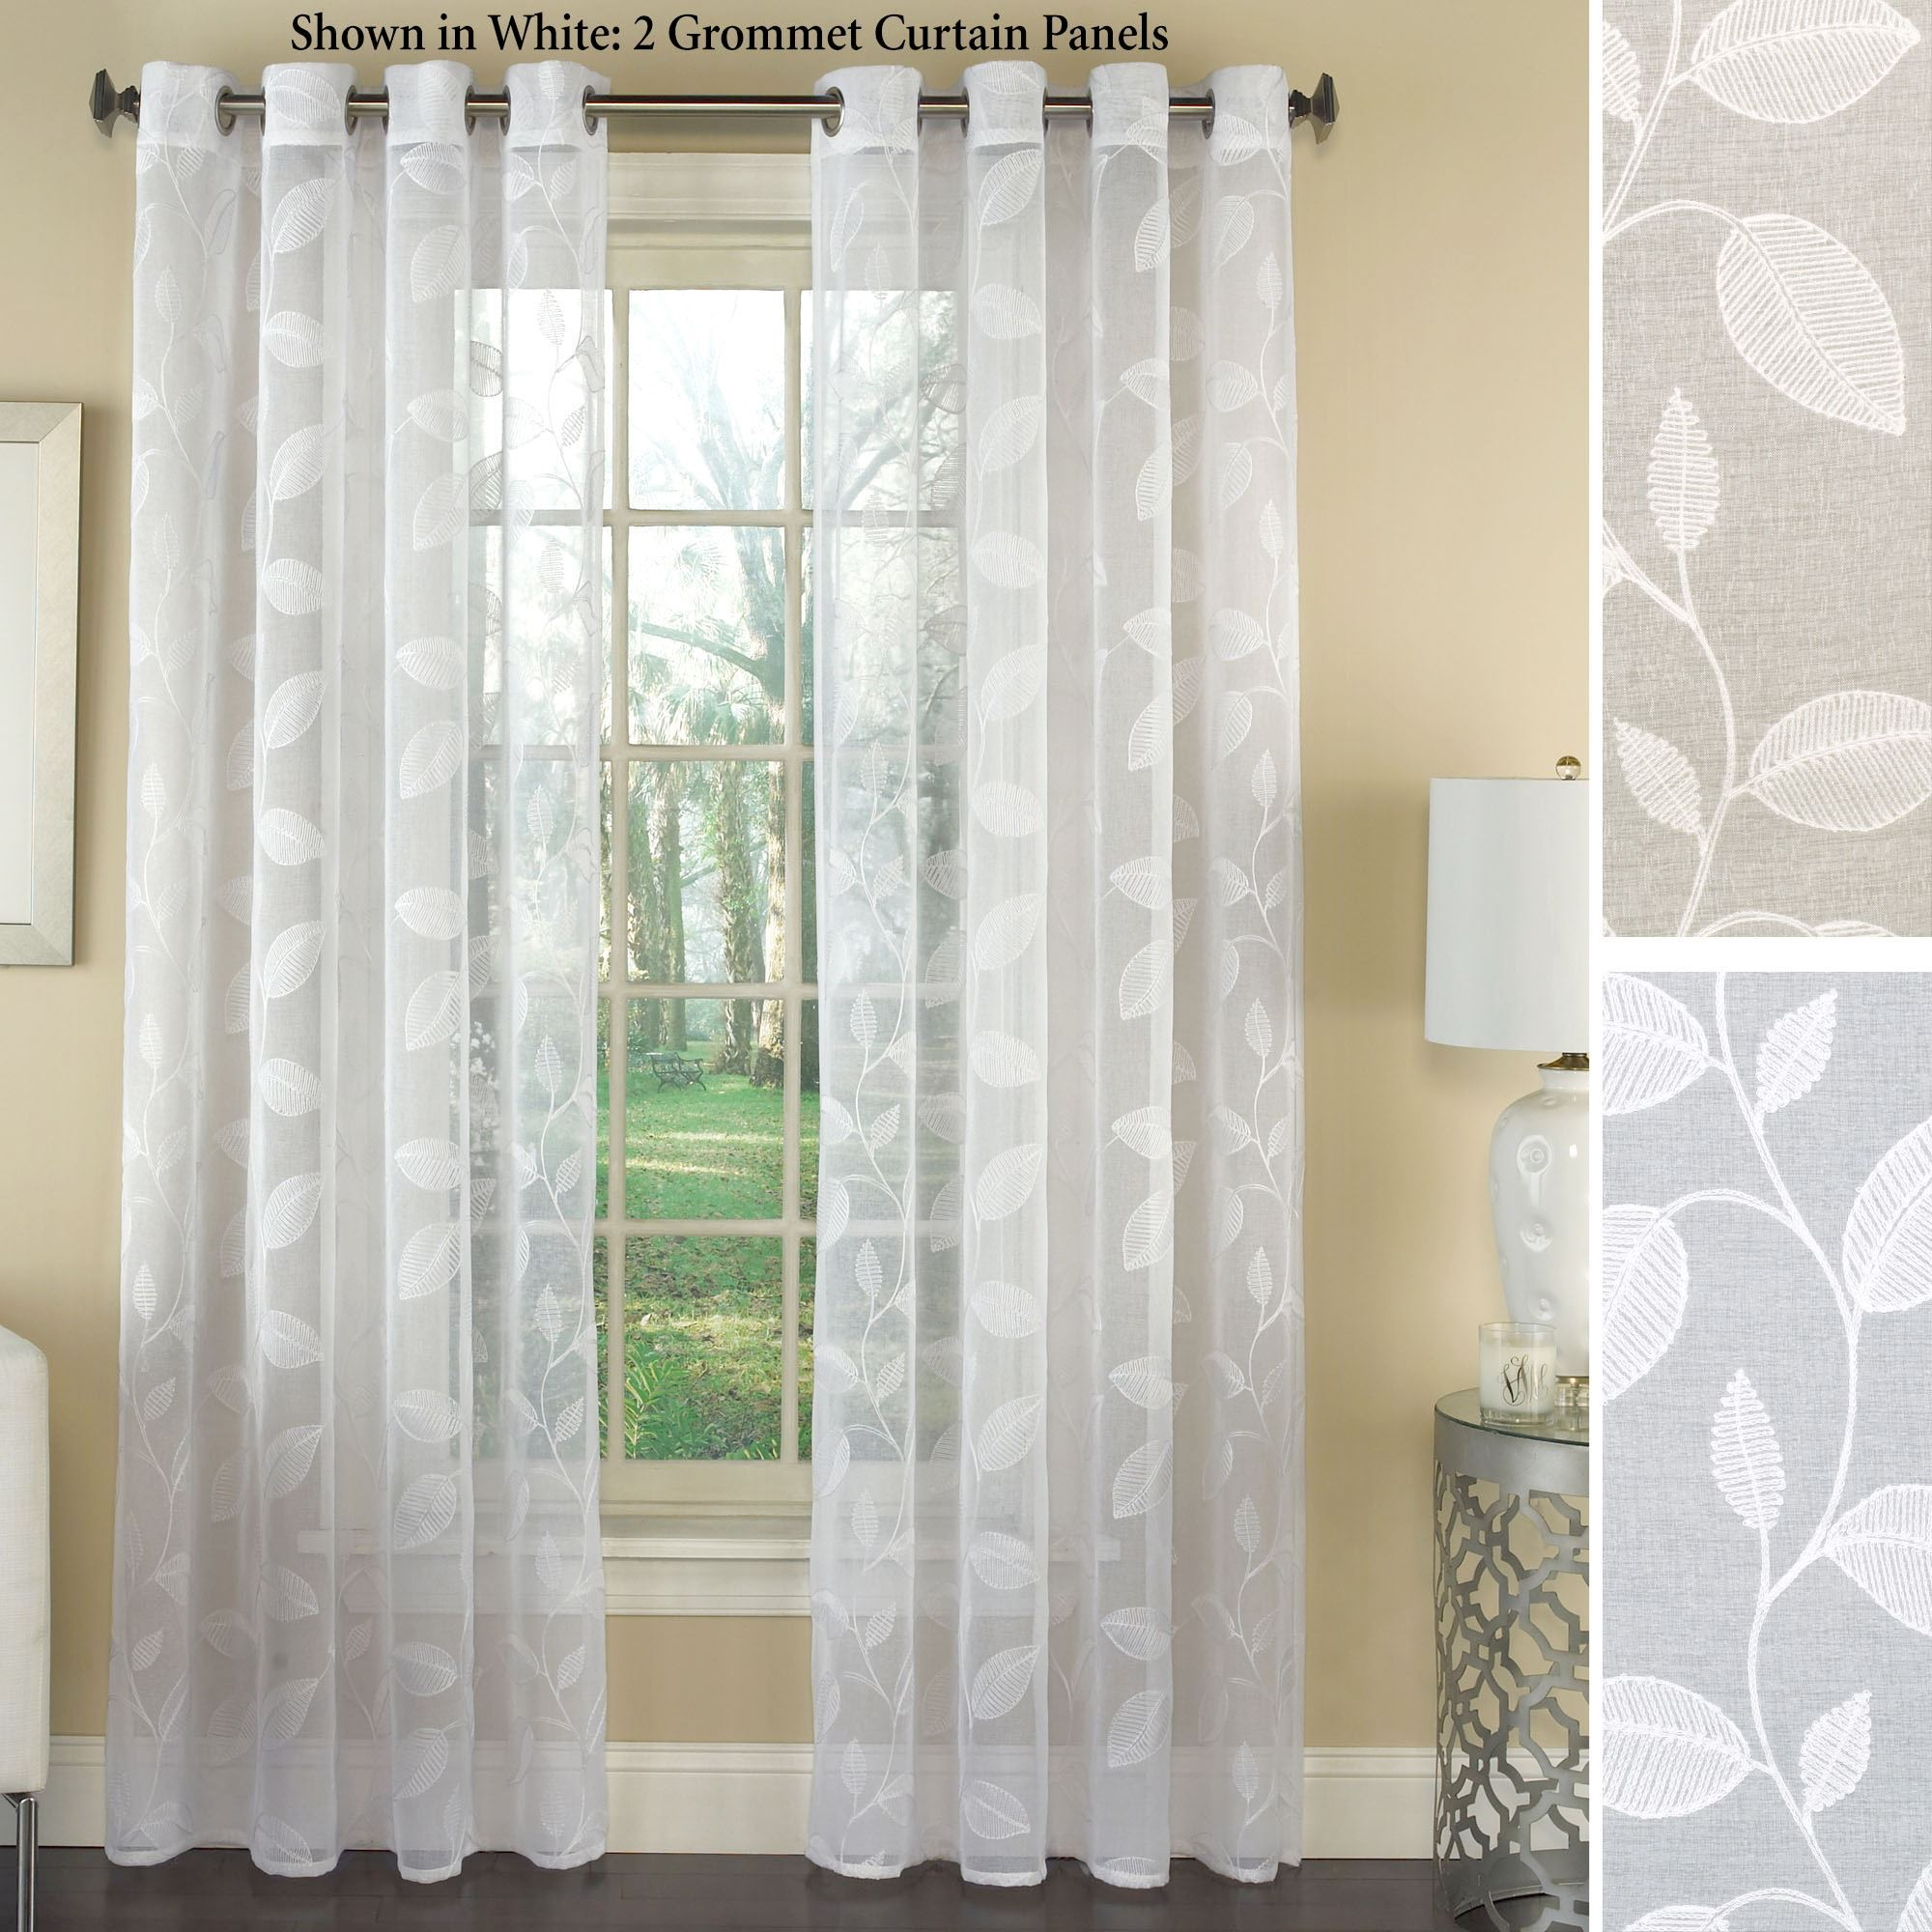 Grommet Curtains With Sheers Avery Semi Sheer Embroidered Grommet Curtain Panels